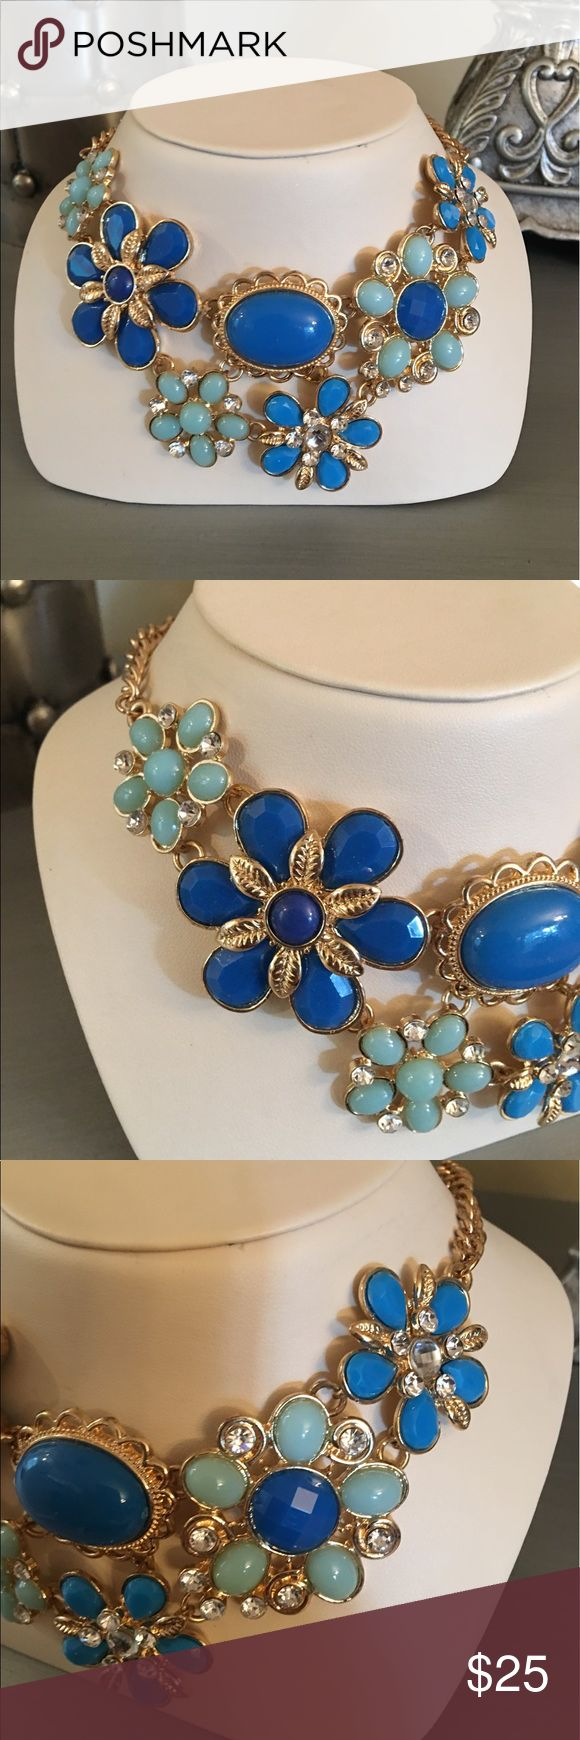 🛍 Blue Diamond Jeweled Flower Statement Necklace Gold tone.  Some tarnish on clasp. Boutique Jewelry Necklaces